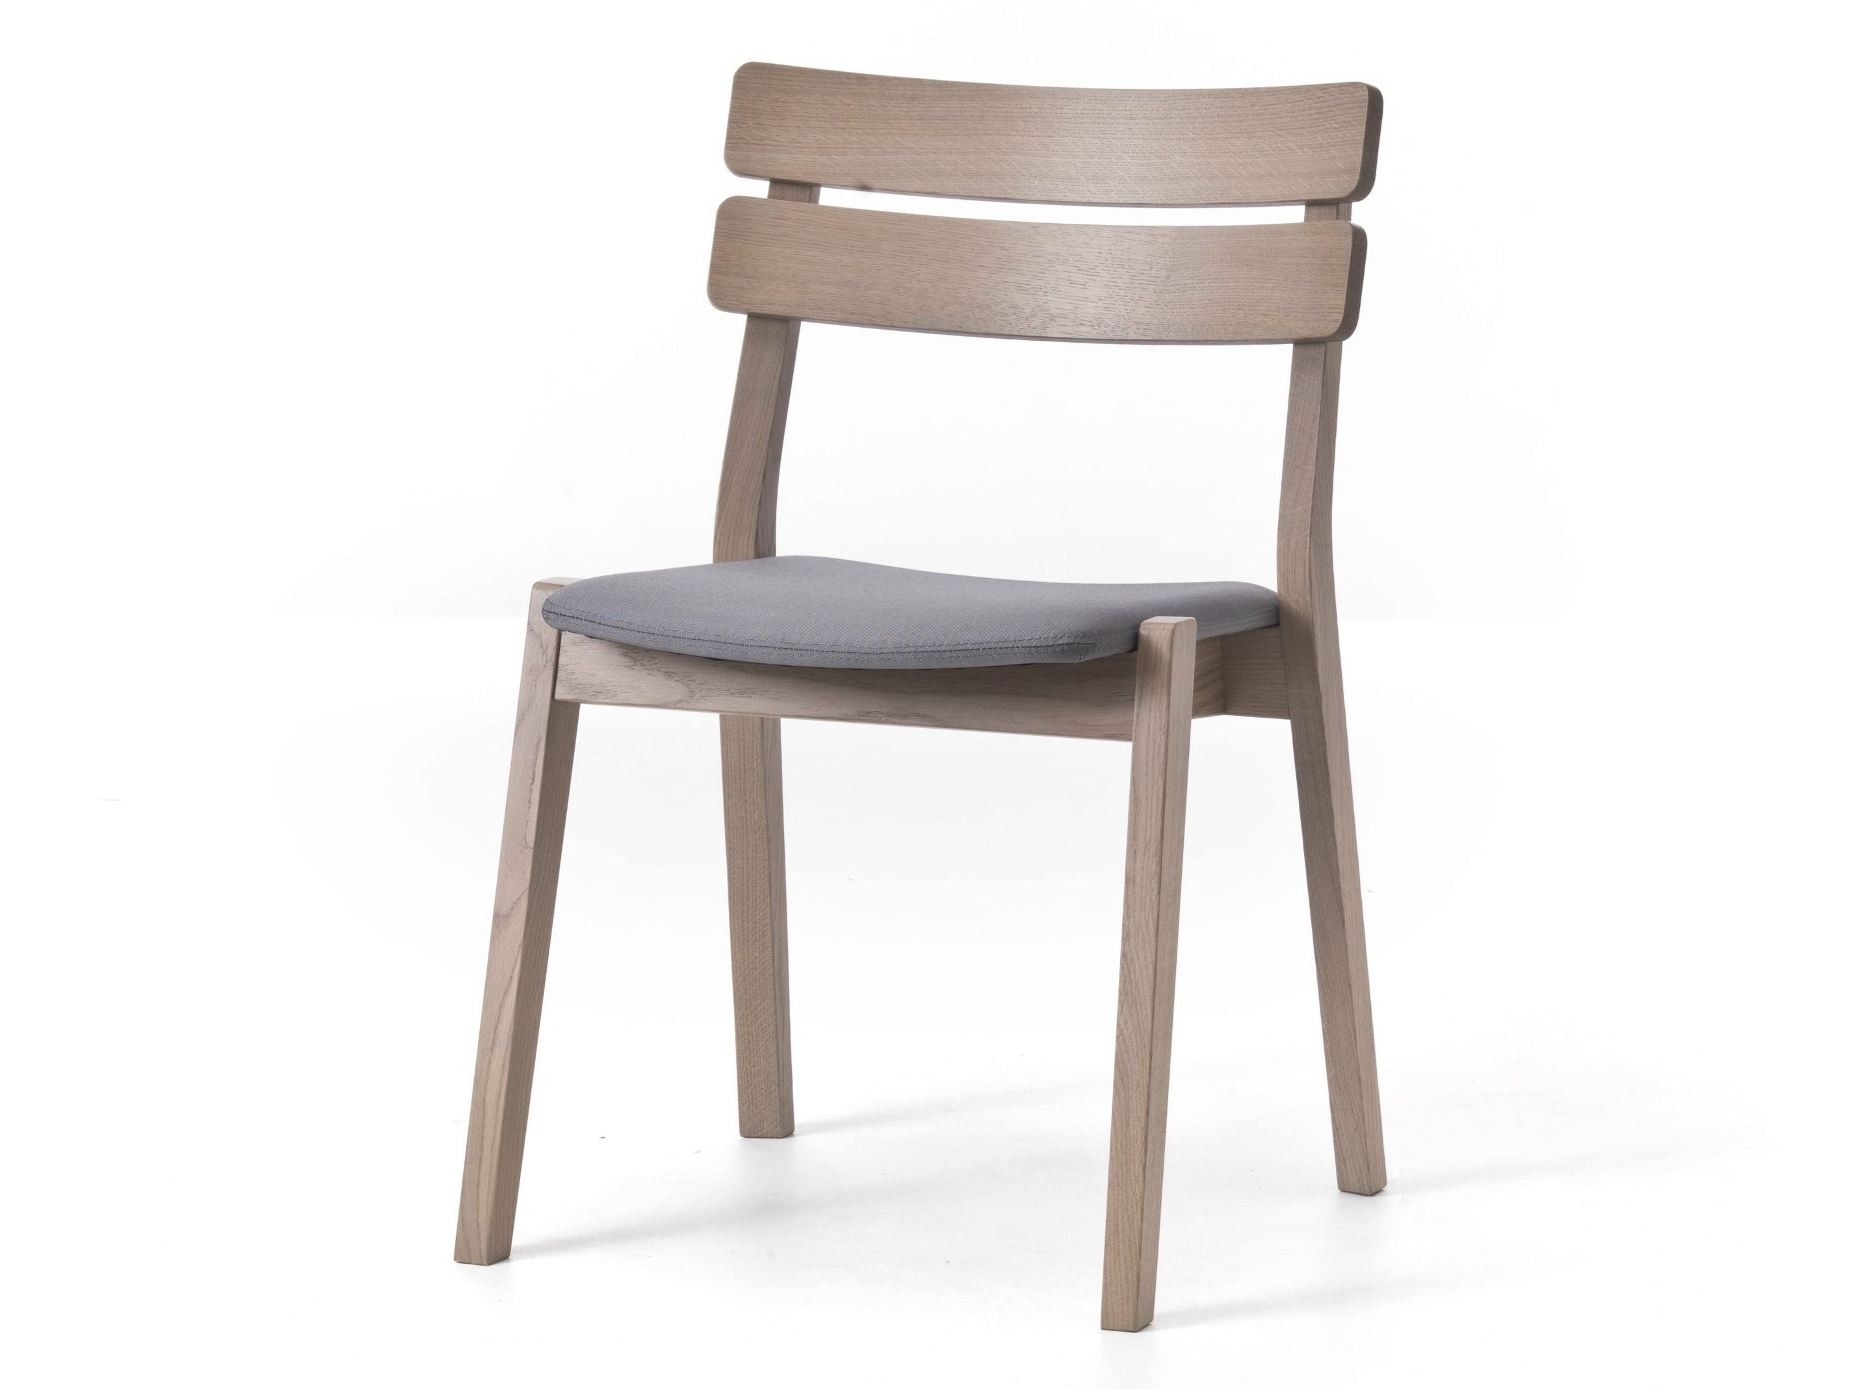 Frame Upholstered Chair By Very Wood Design Paola Navone